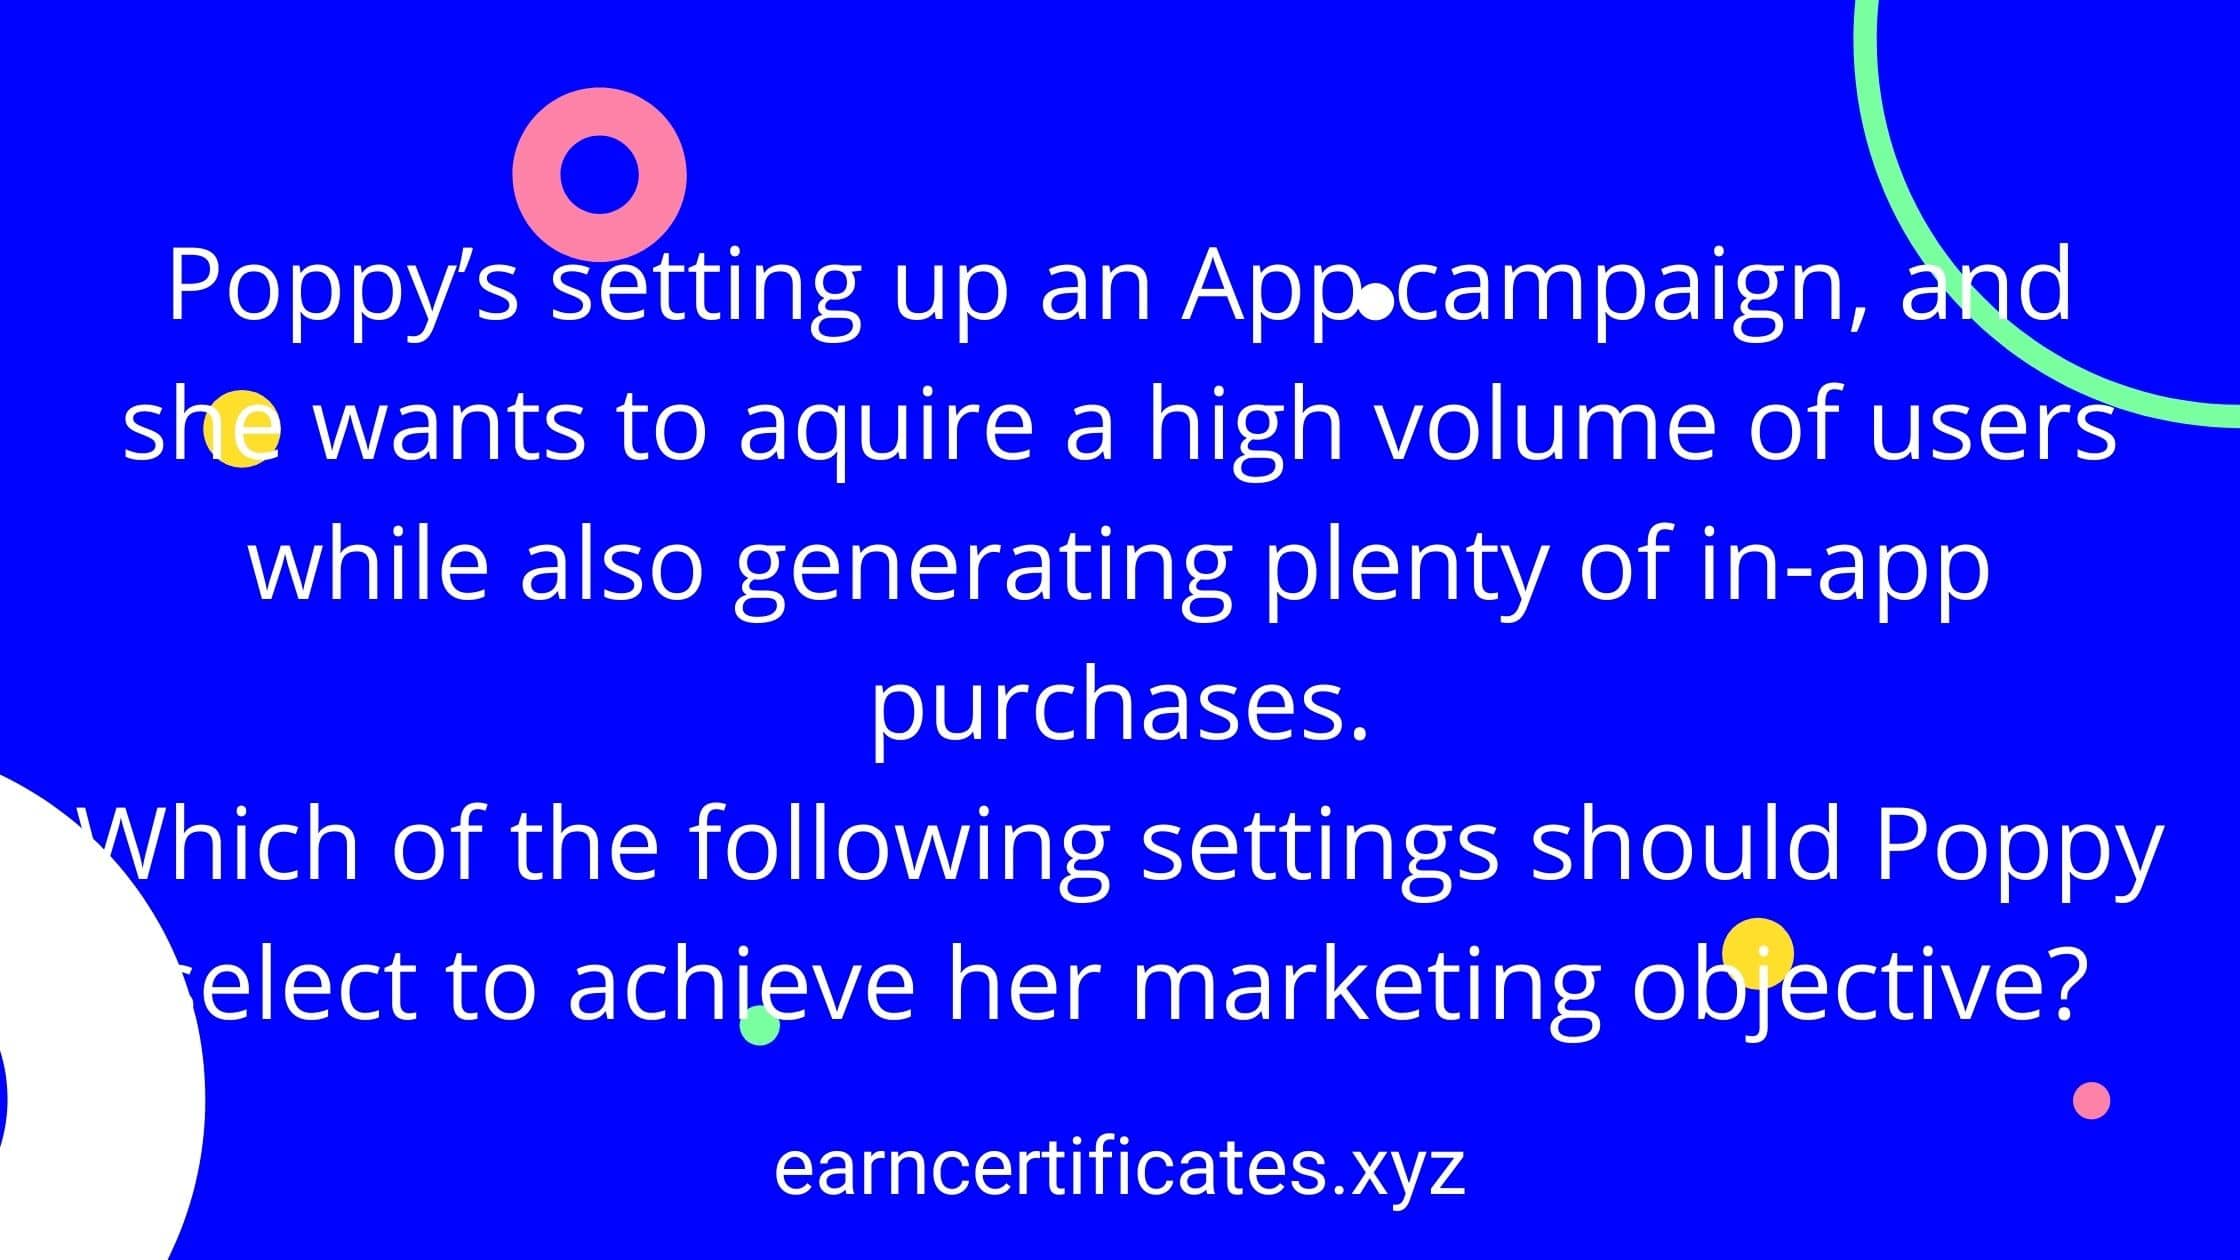 Poppy's setting up an App campaign, and she wants to aquire a high volume of users while also generating plenty of in-app purchases. Which of the following settings should Poppy select to achieve her marketing objective?